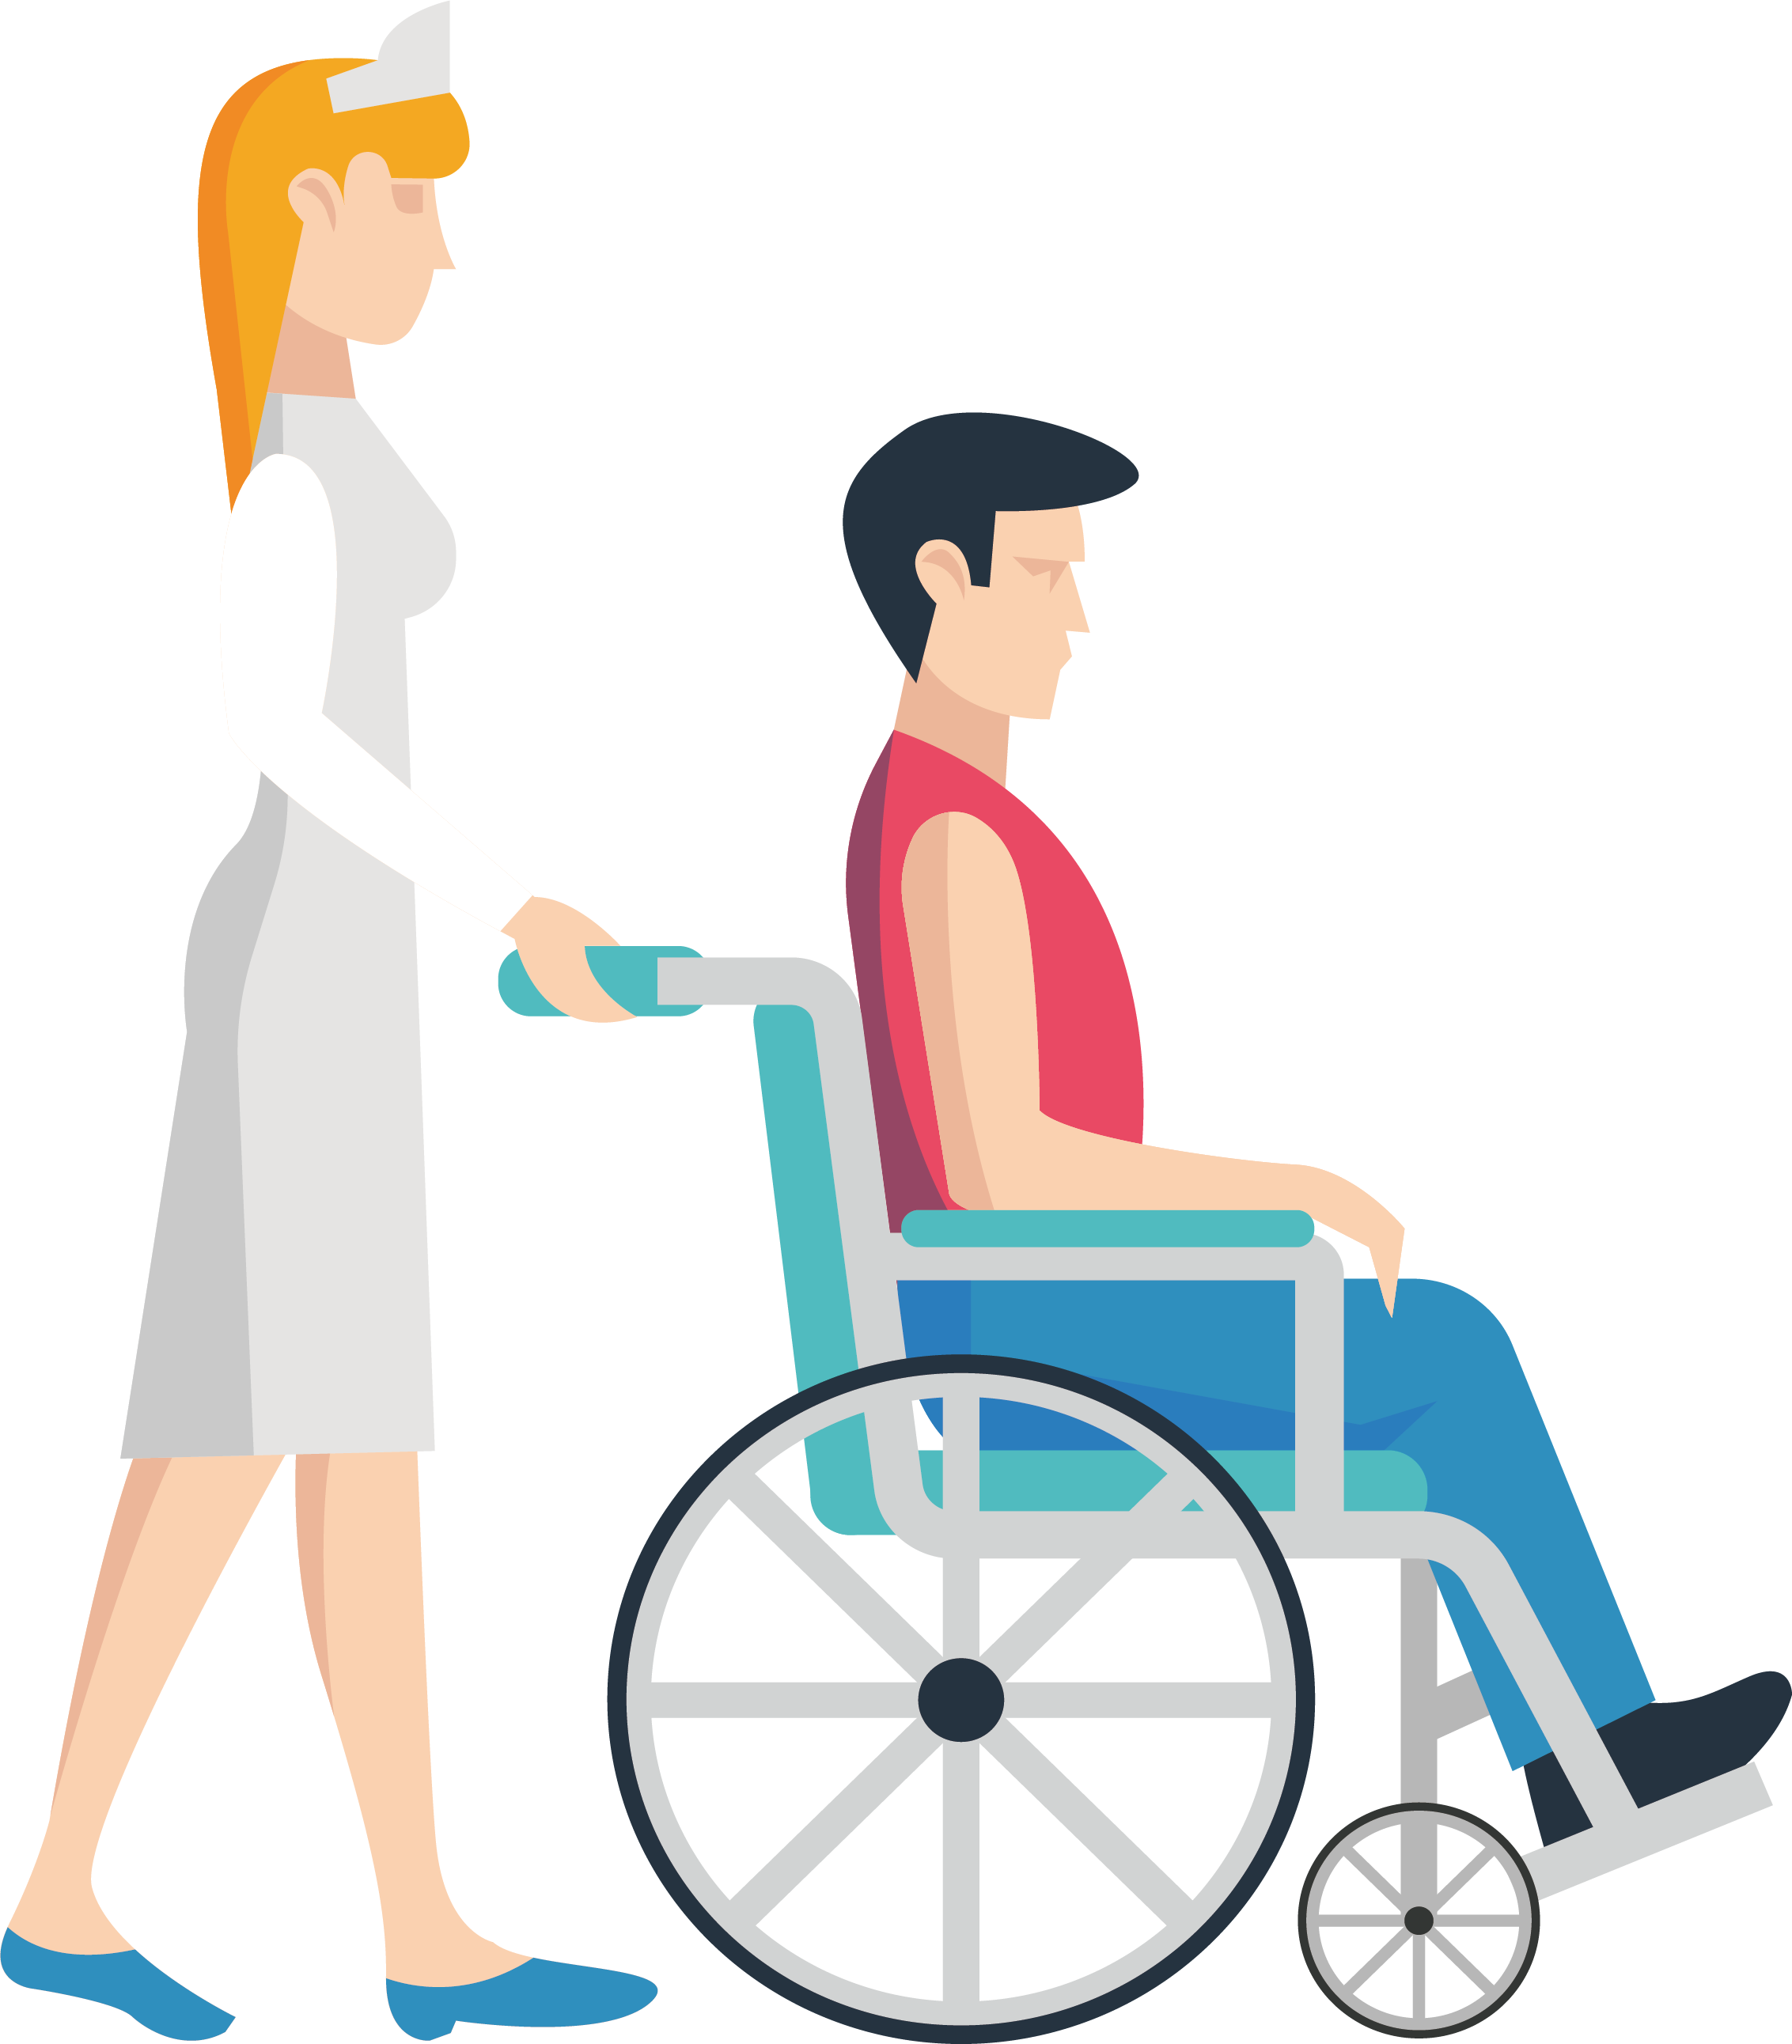 Nursing clipart director nursing. Wheelchair clip art push